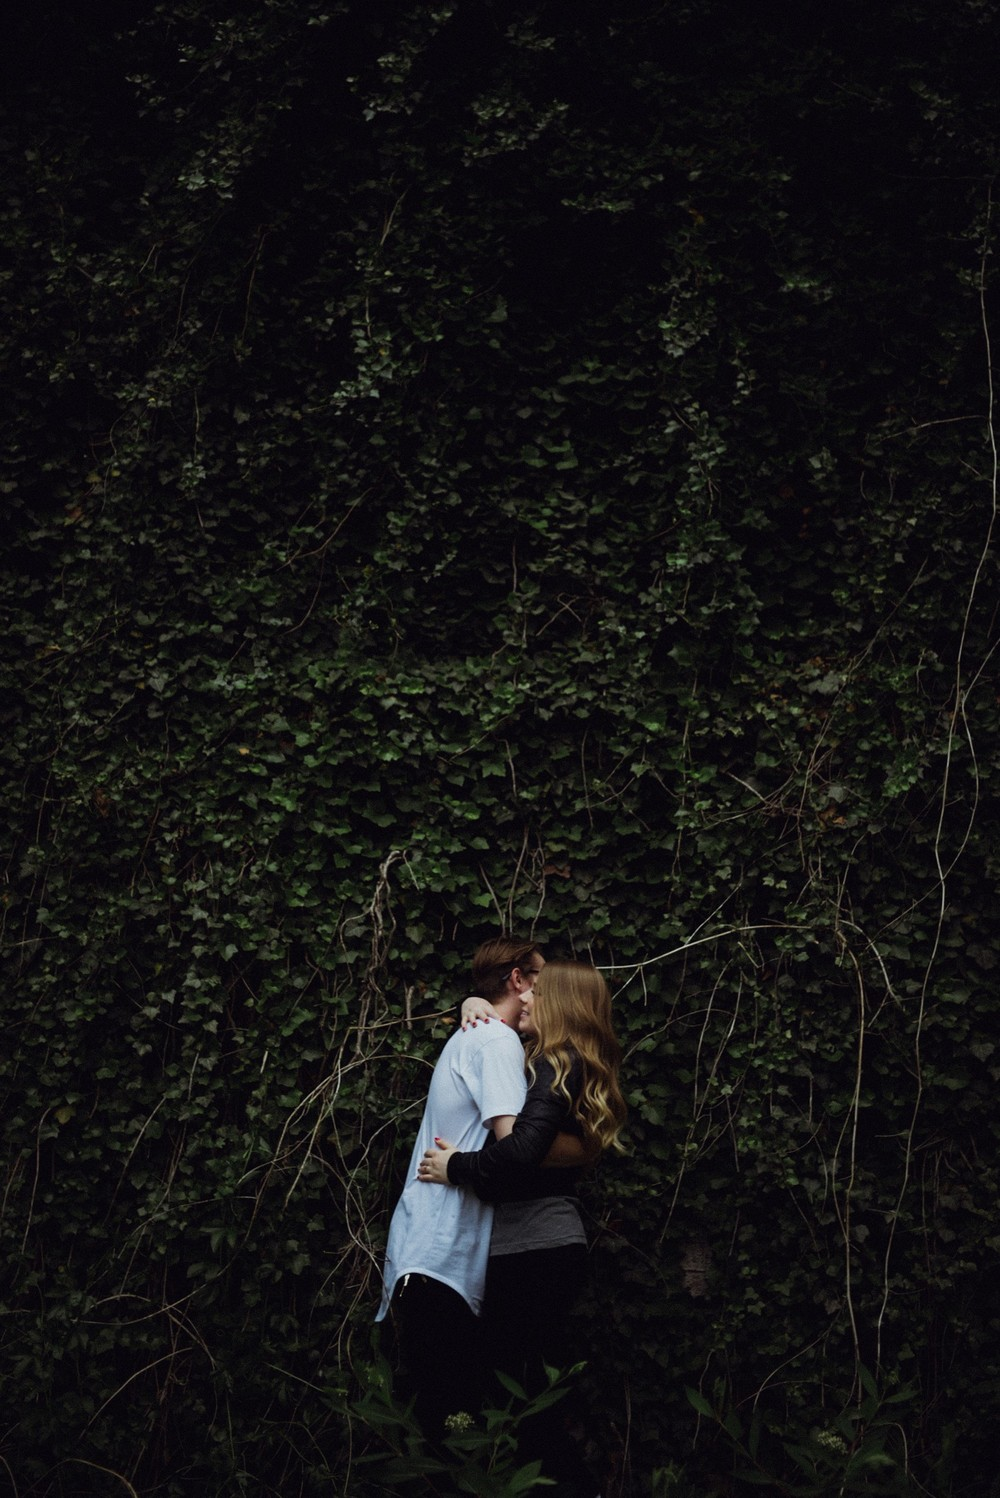 edgy-st-louis-engagement-photos_0797.jpg